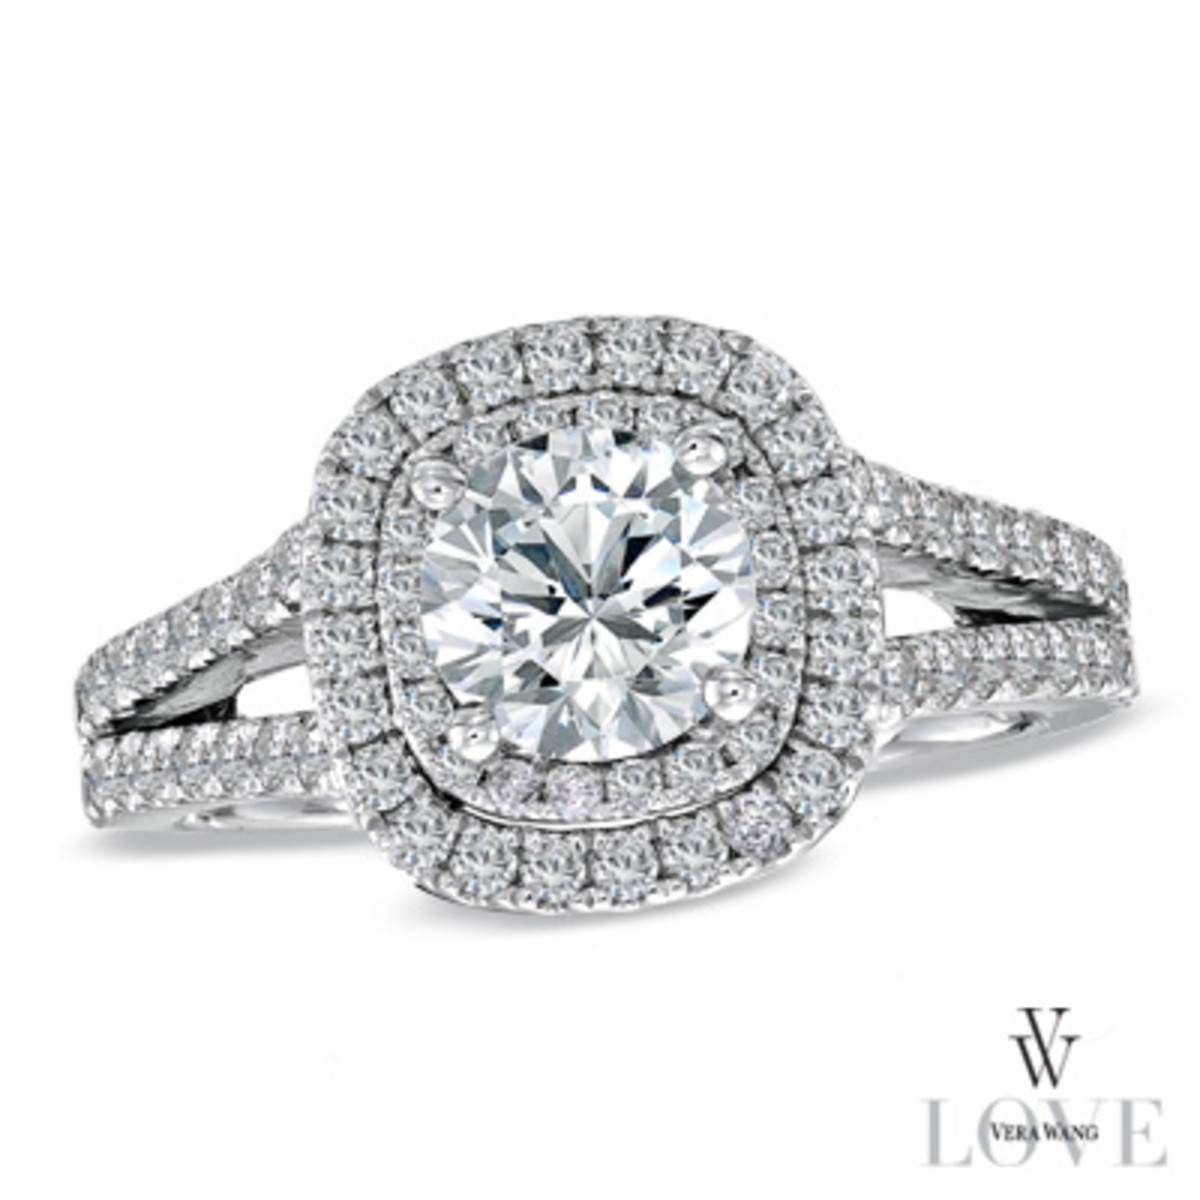 Wedding Rings : Cushion Cut Diamond Engagement Rings Zales – Rings With Zales Diamond Engagement Rings (View 11 of 15)